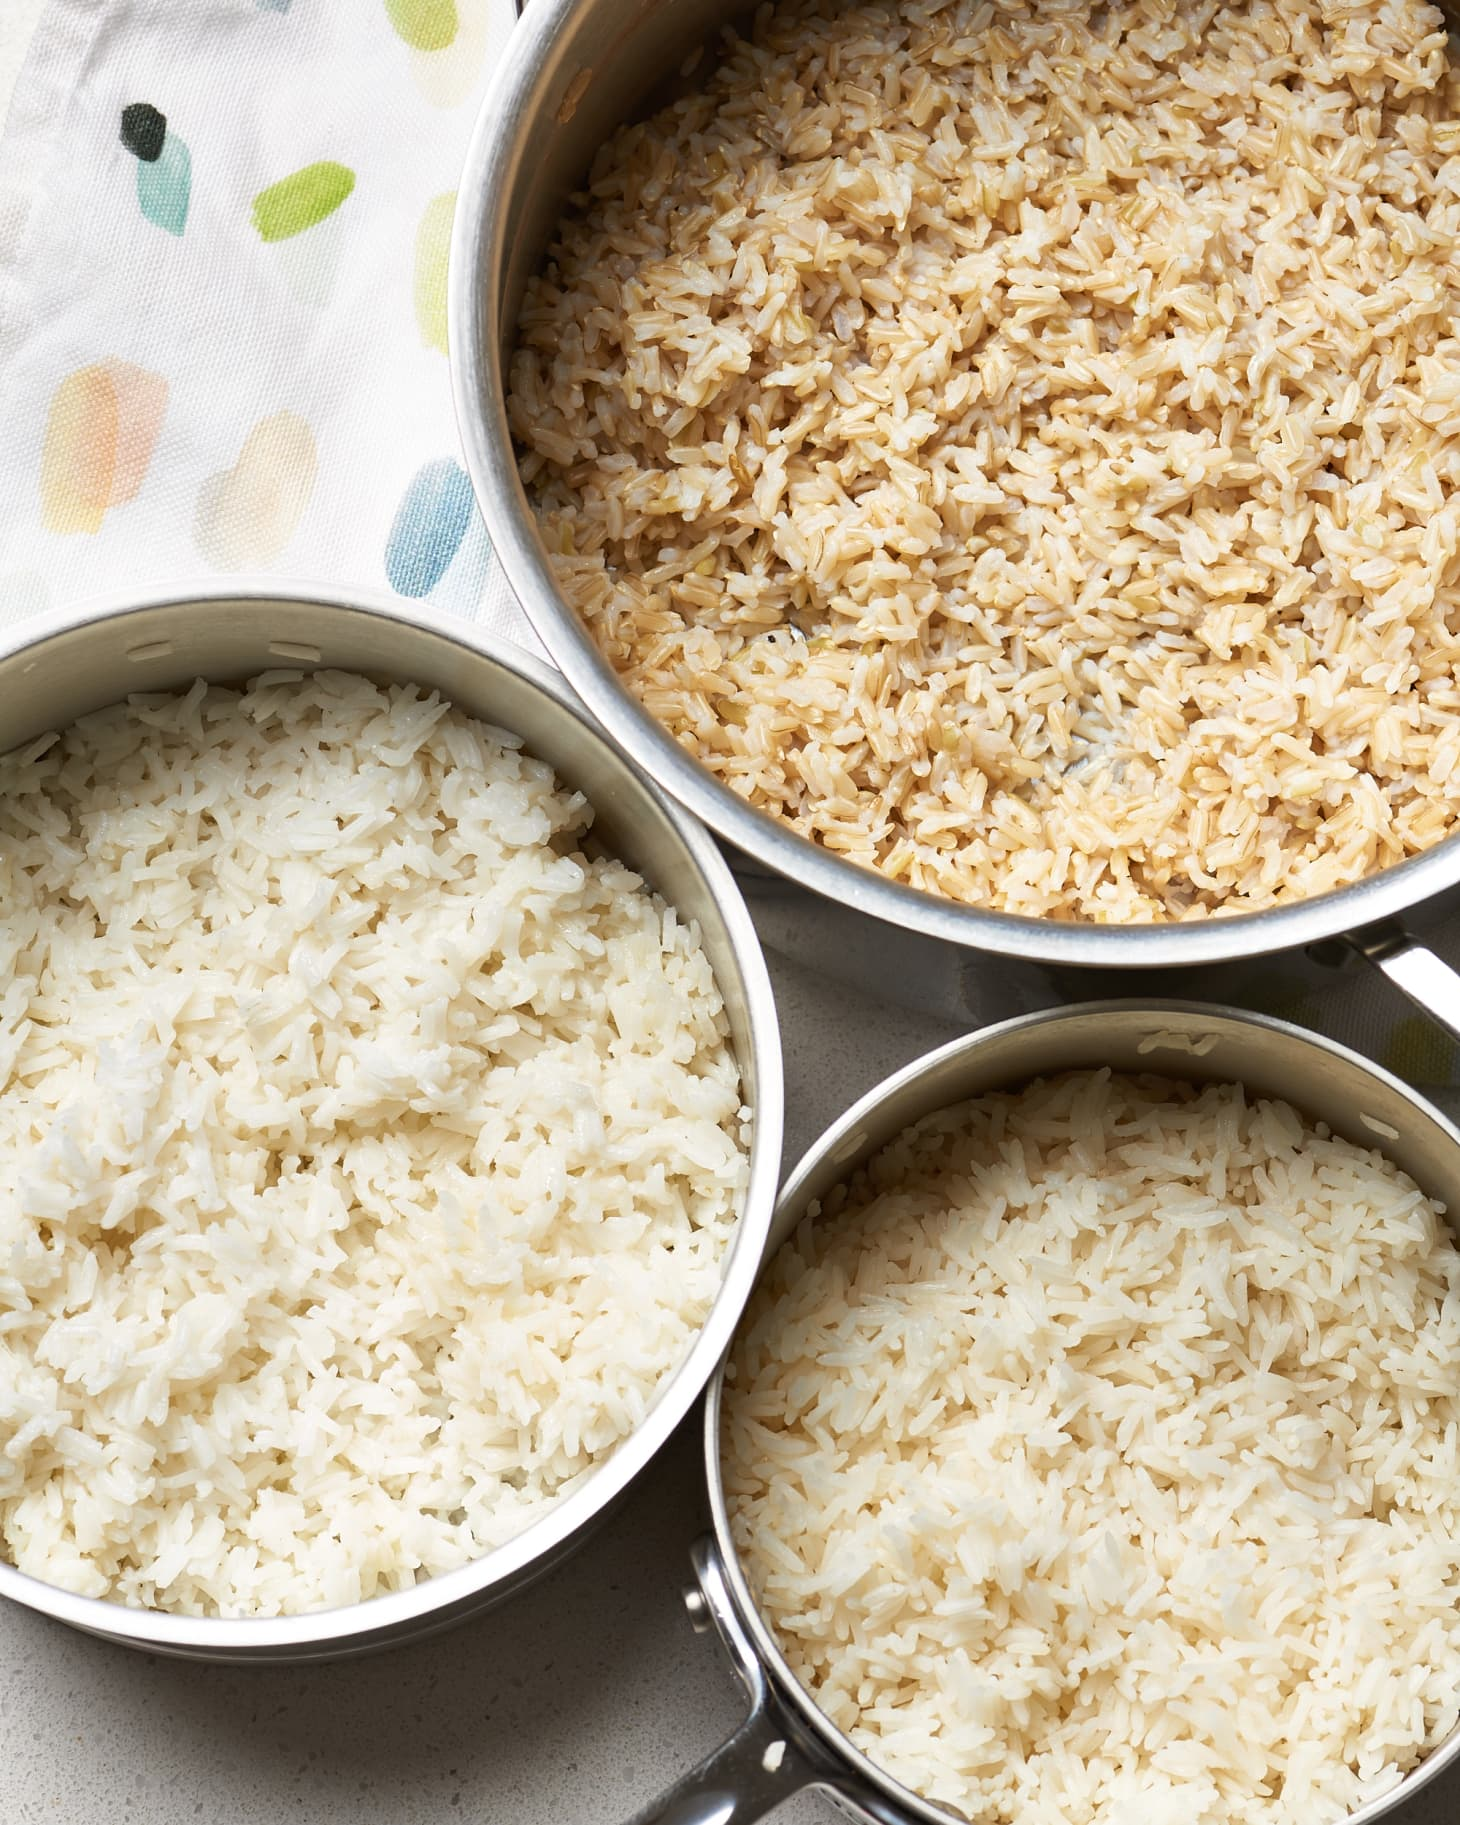 Here's How to Tell When to Toss That Take Out Rice | Kitchn